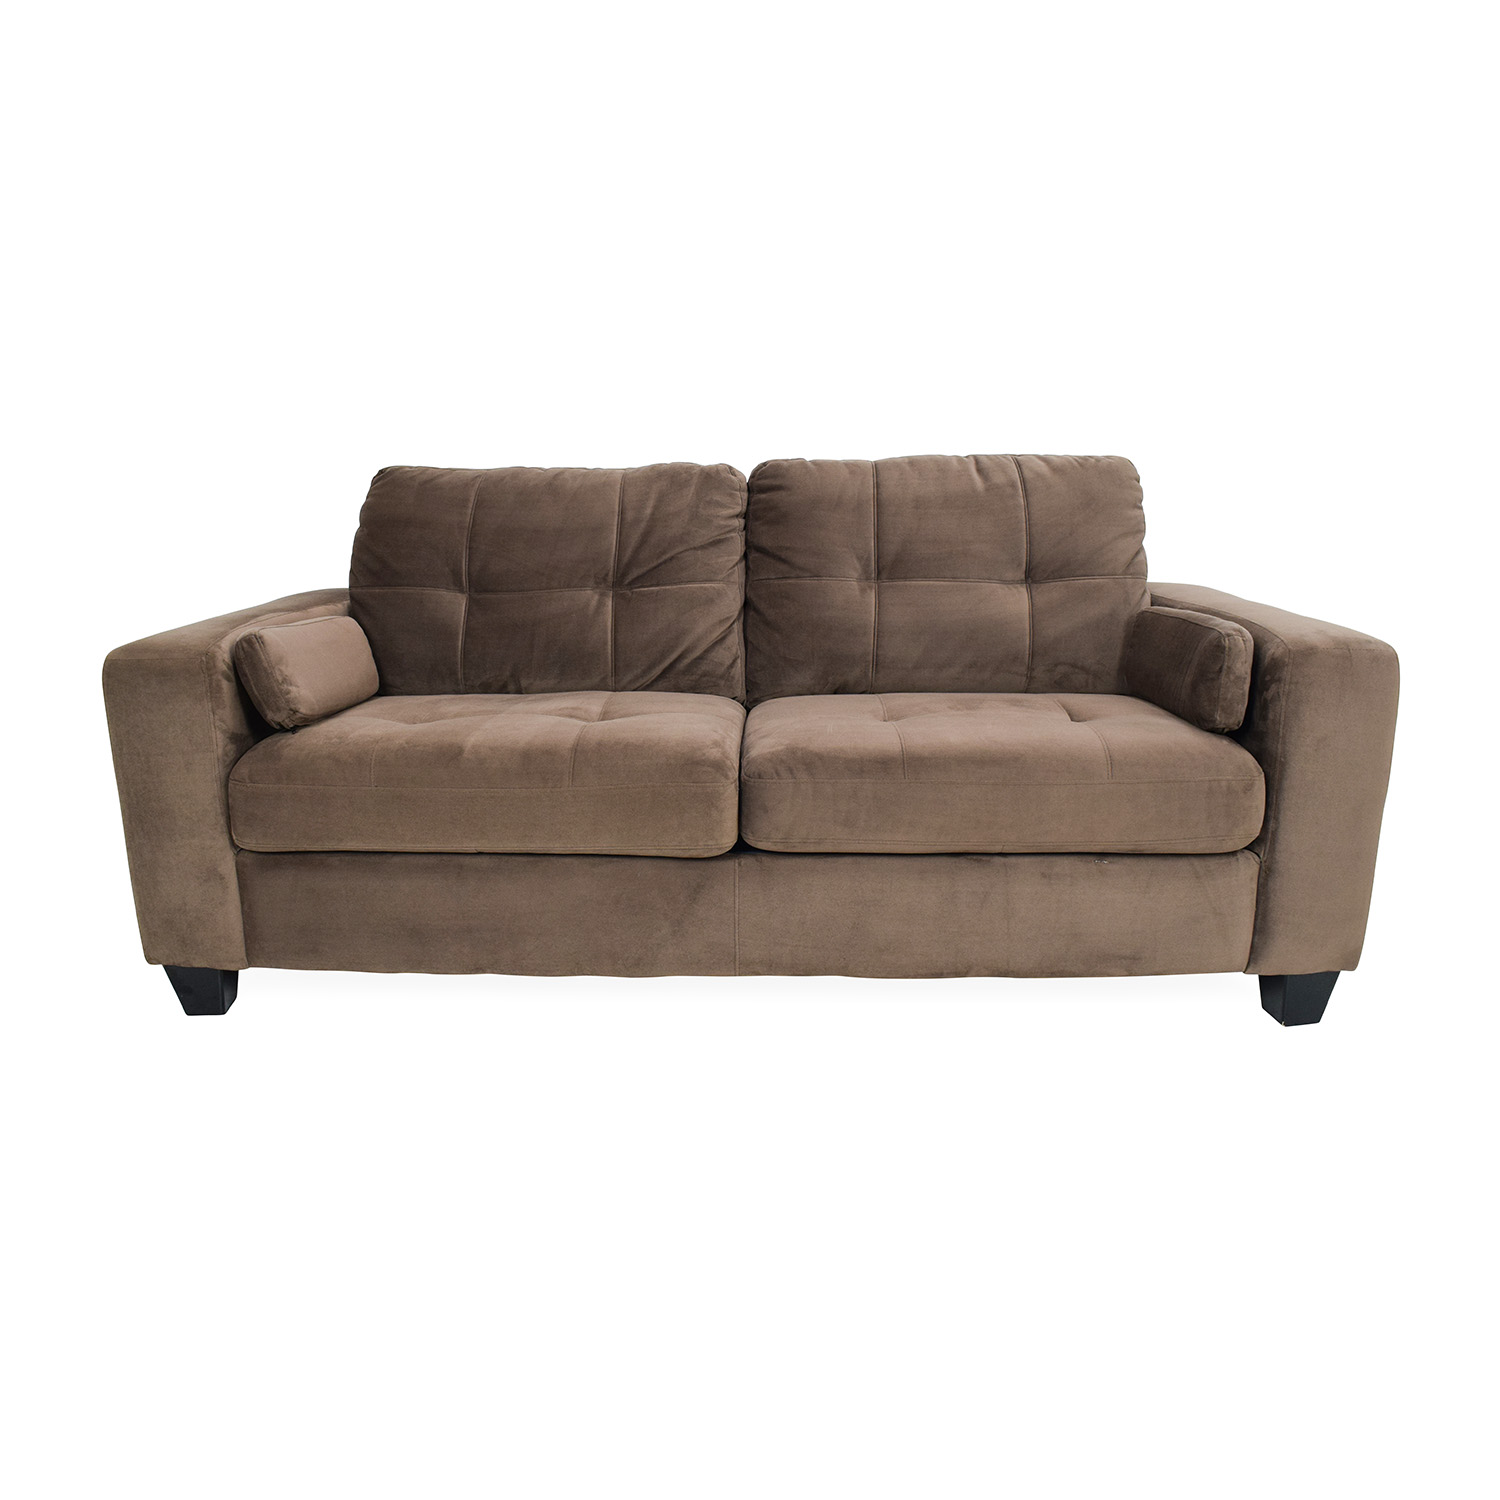 Jennifer Convertibles Jennifer Convertibles Full Size Sofa Bed used